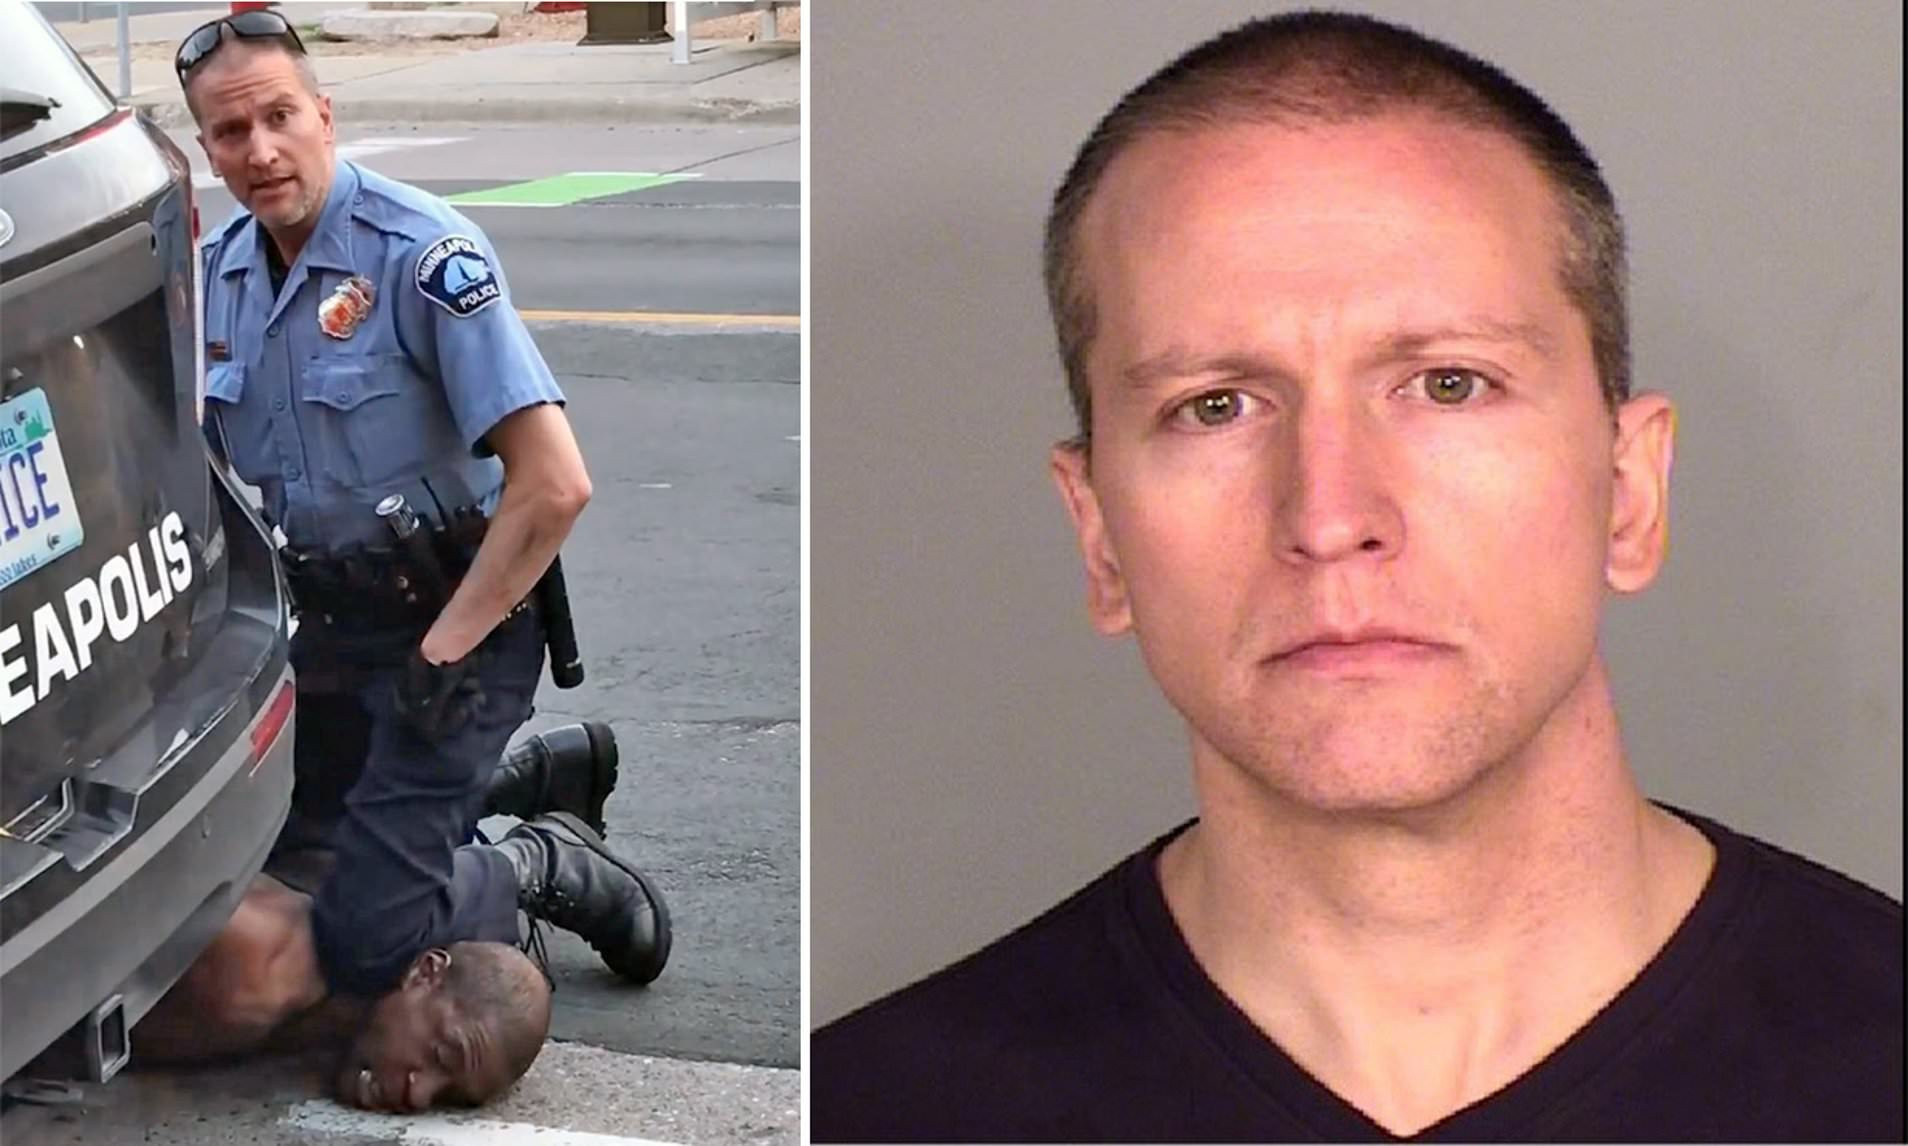 FORMER POLICE OFFICER, DEREK CHAUVIN SENTENCED TO 22-AND-A-HALF YEARS FOR MURDER OF GEORGE FLOYD (PHOTOS)